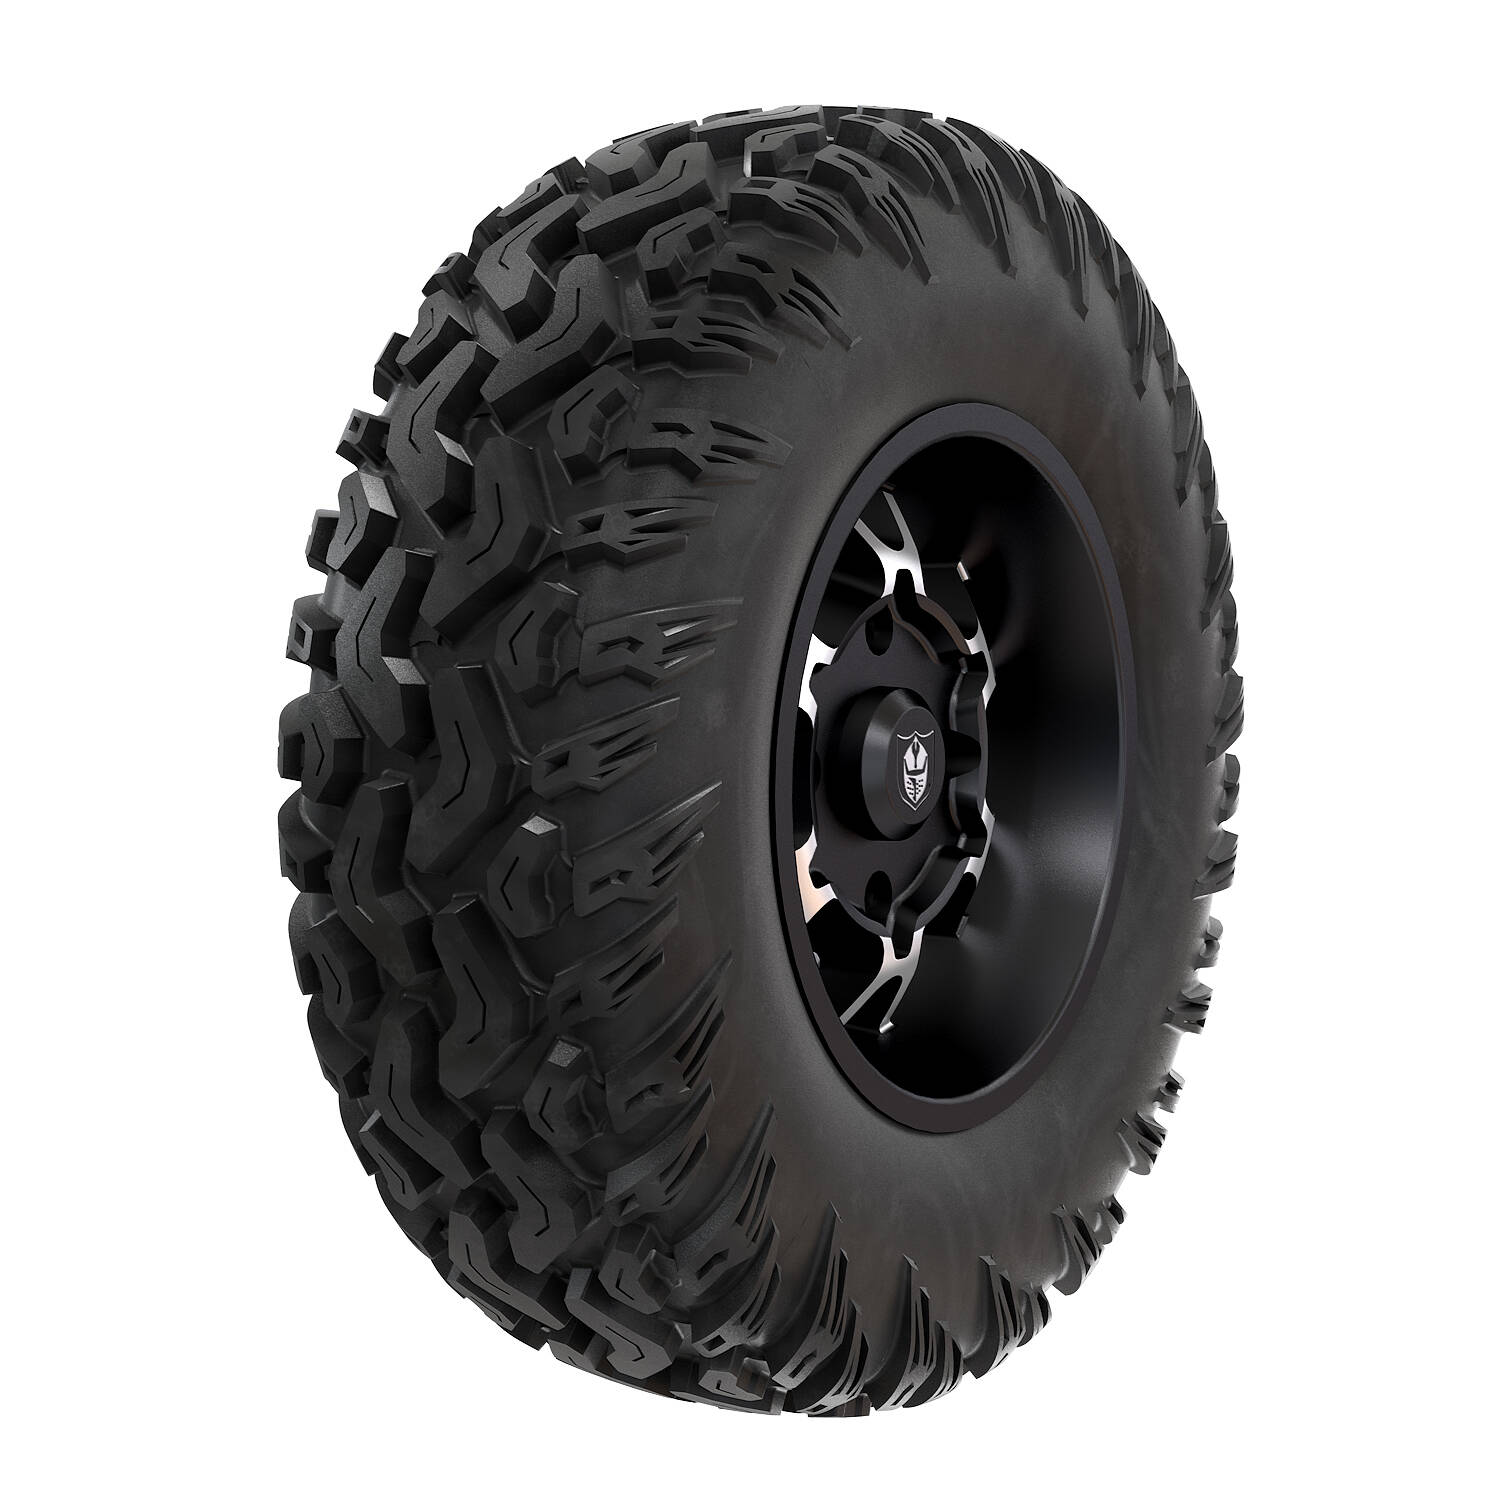 Pro Armor® Wheel & Tire Set: Cyclone - Accent & Hammer - 30""